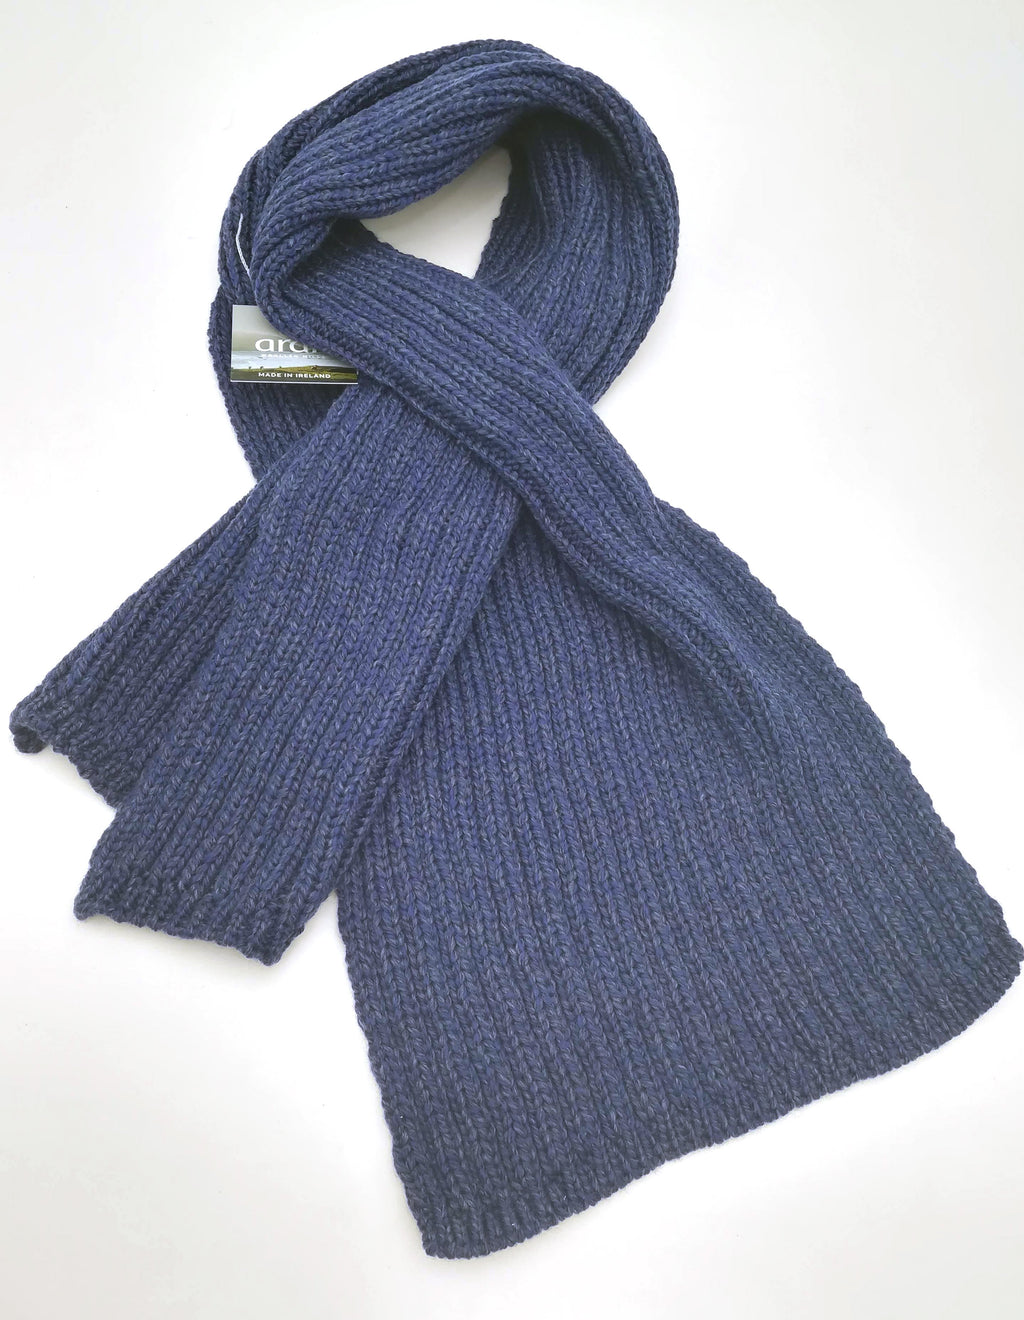 Rib knit pull through scarf